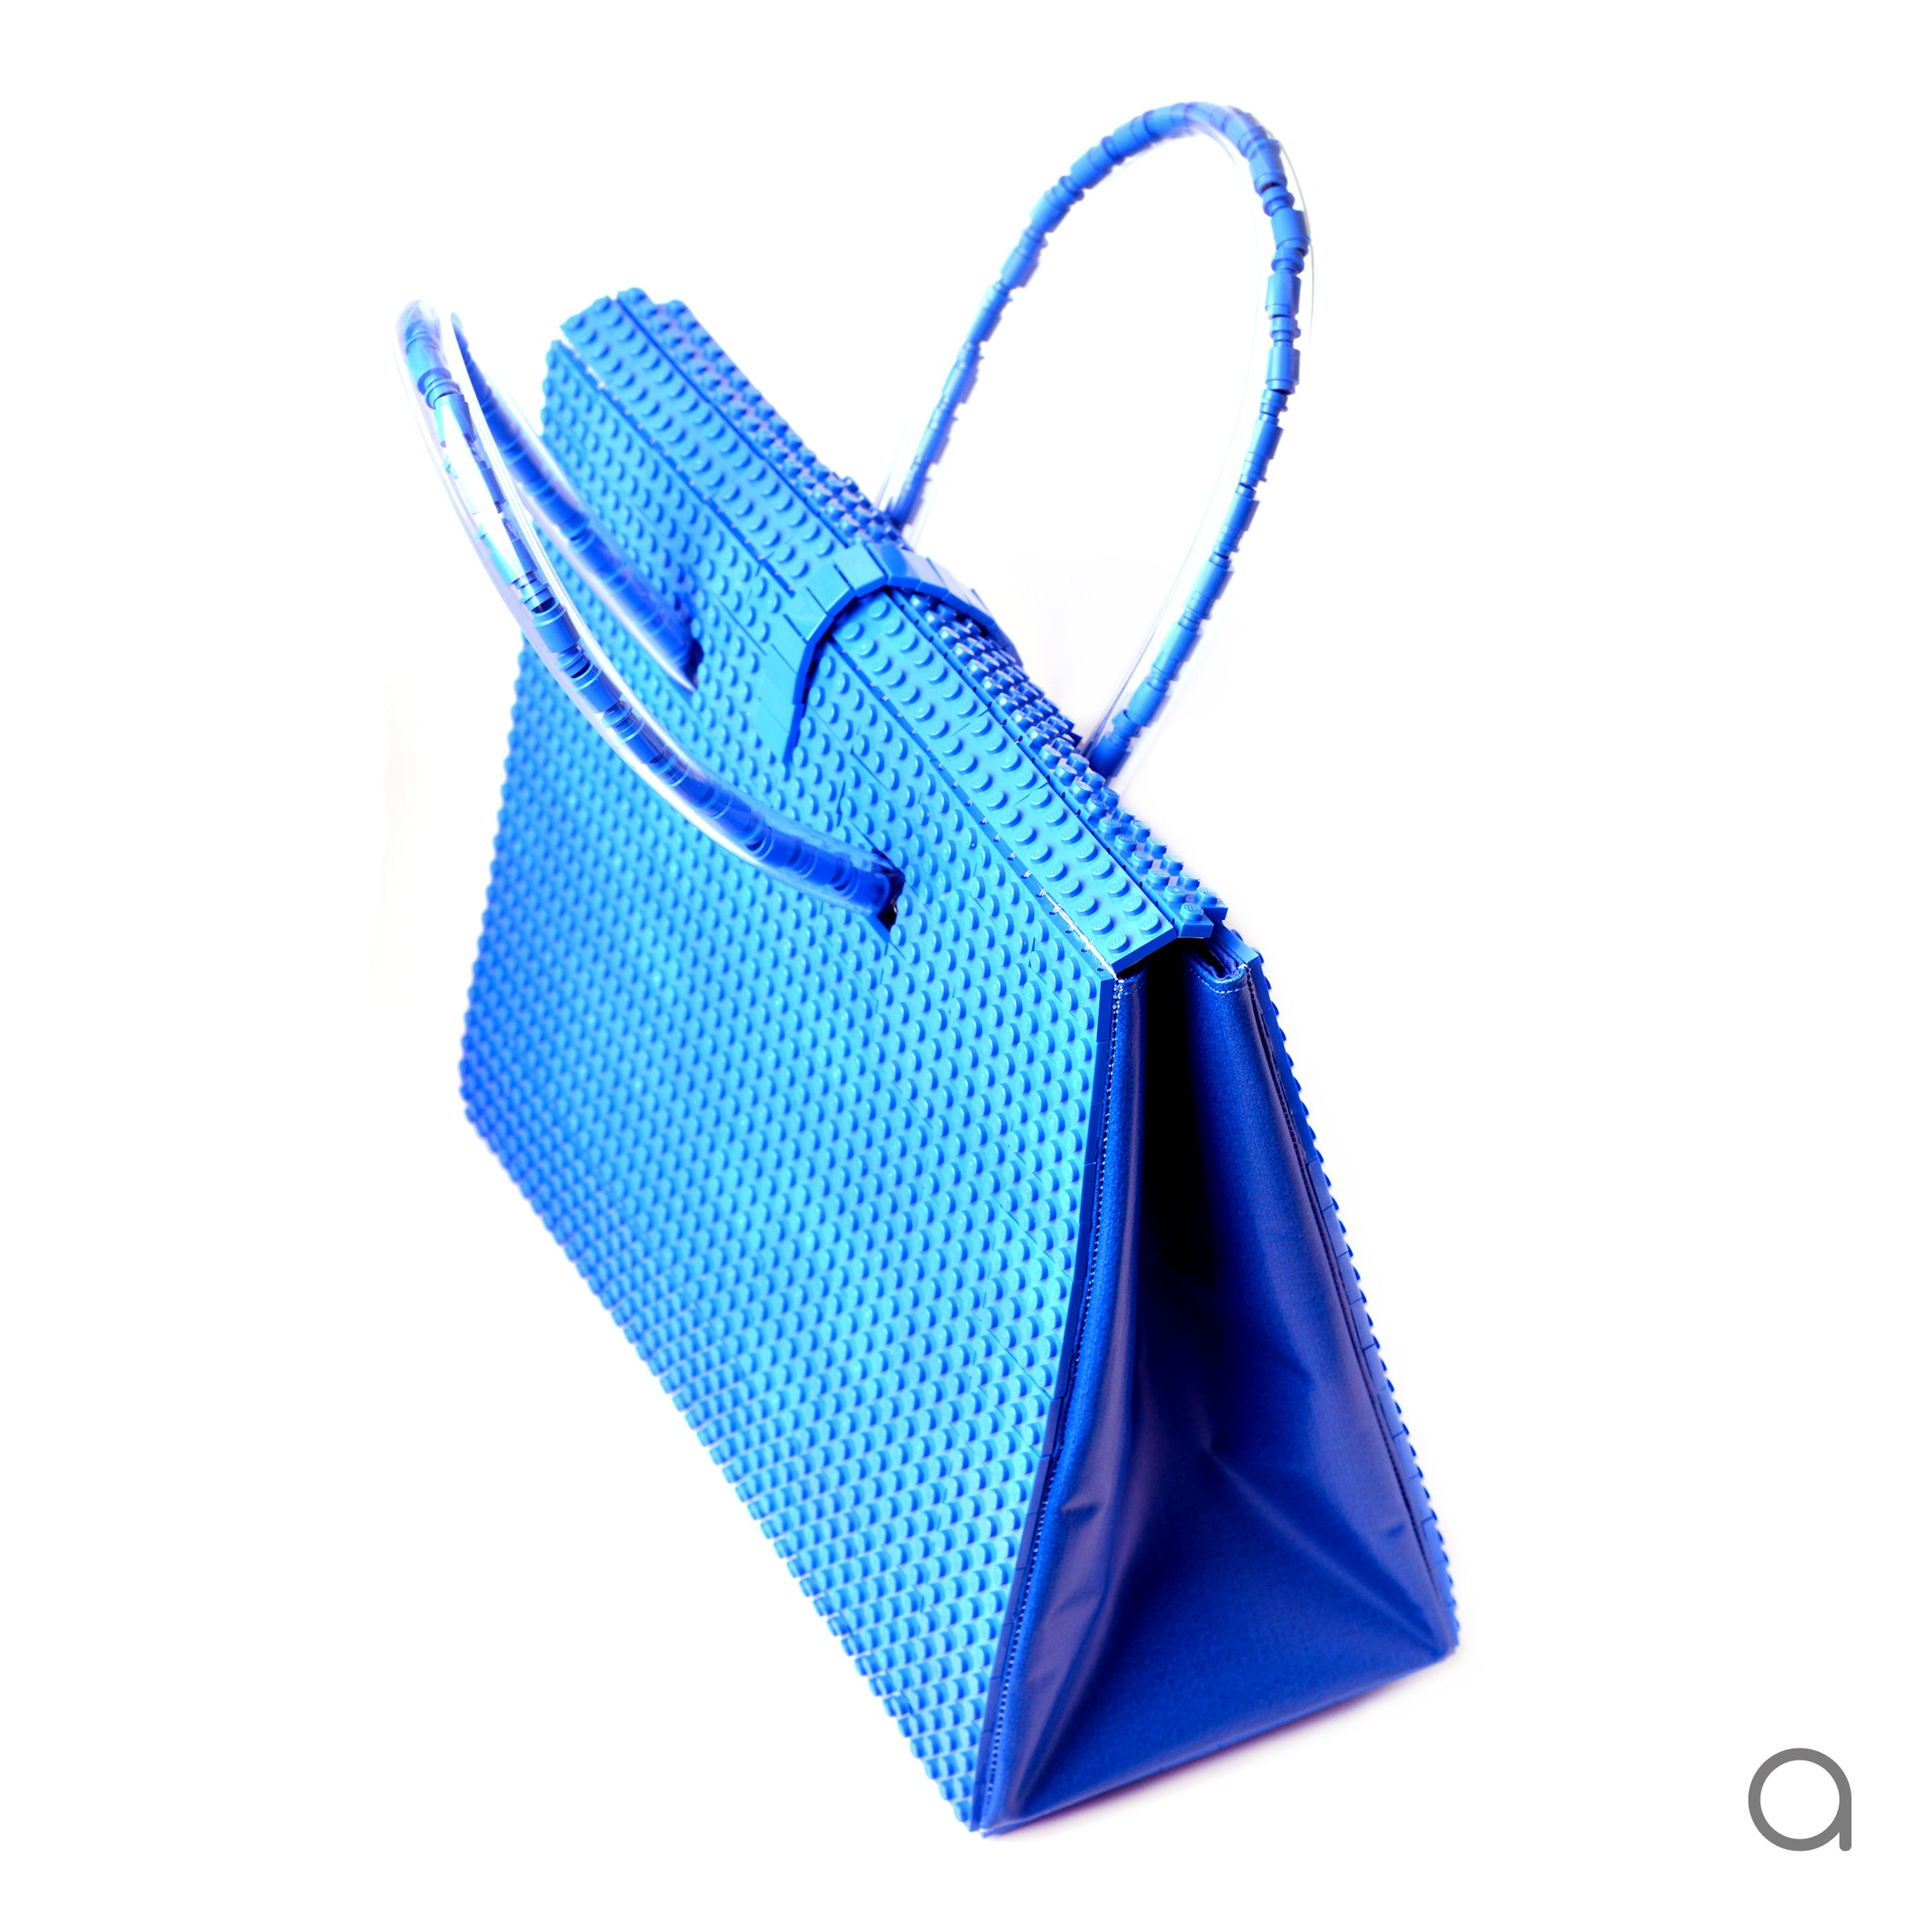 BRICK BAG 32 - blue